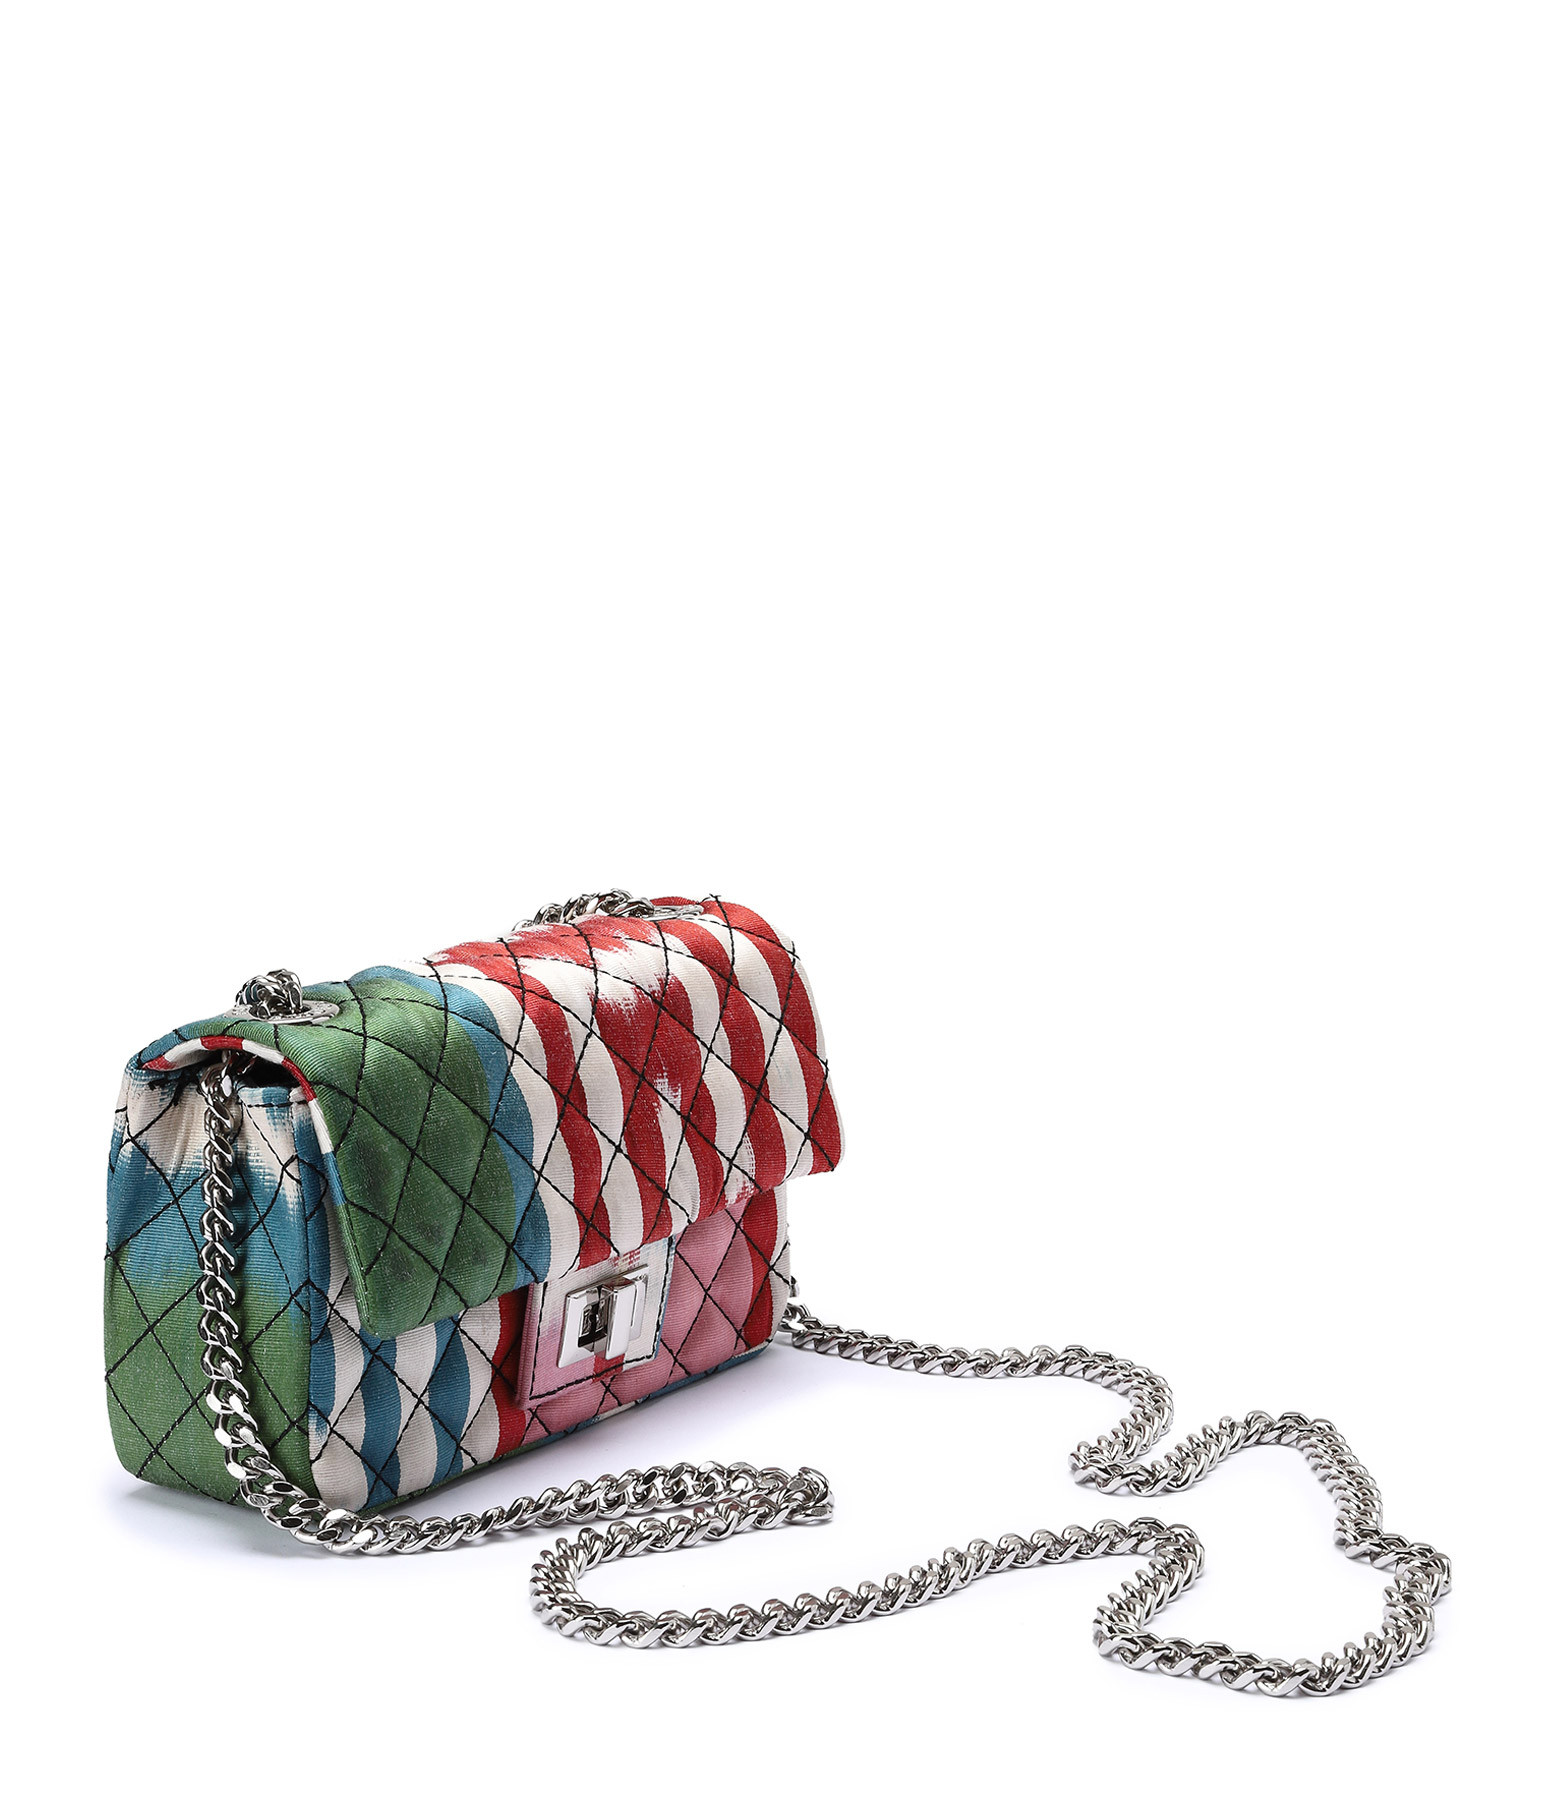 ROUGH STUDIOS - Sac Bandita Mini Soie Multicolore